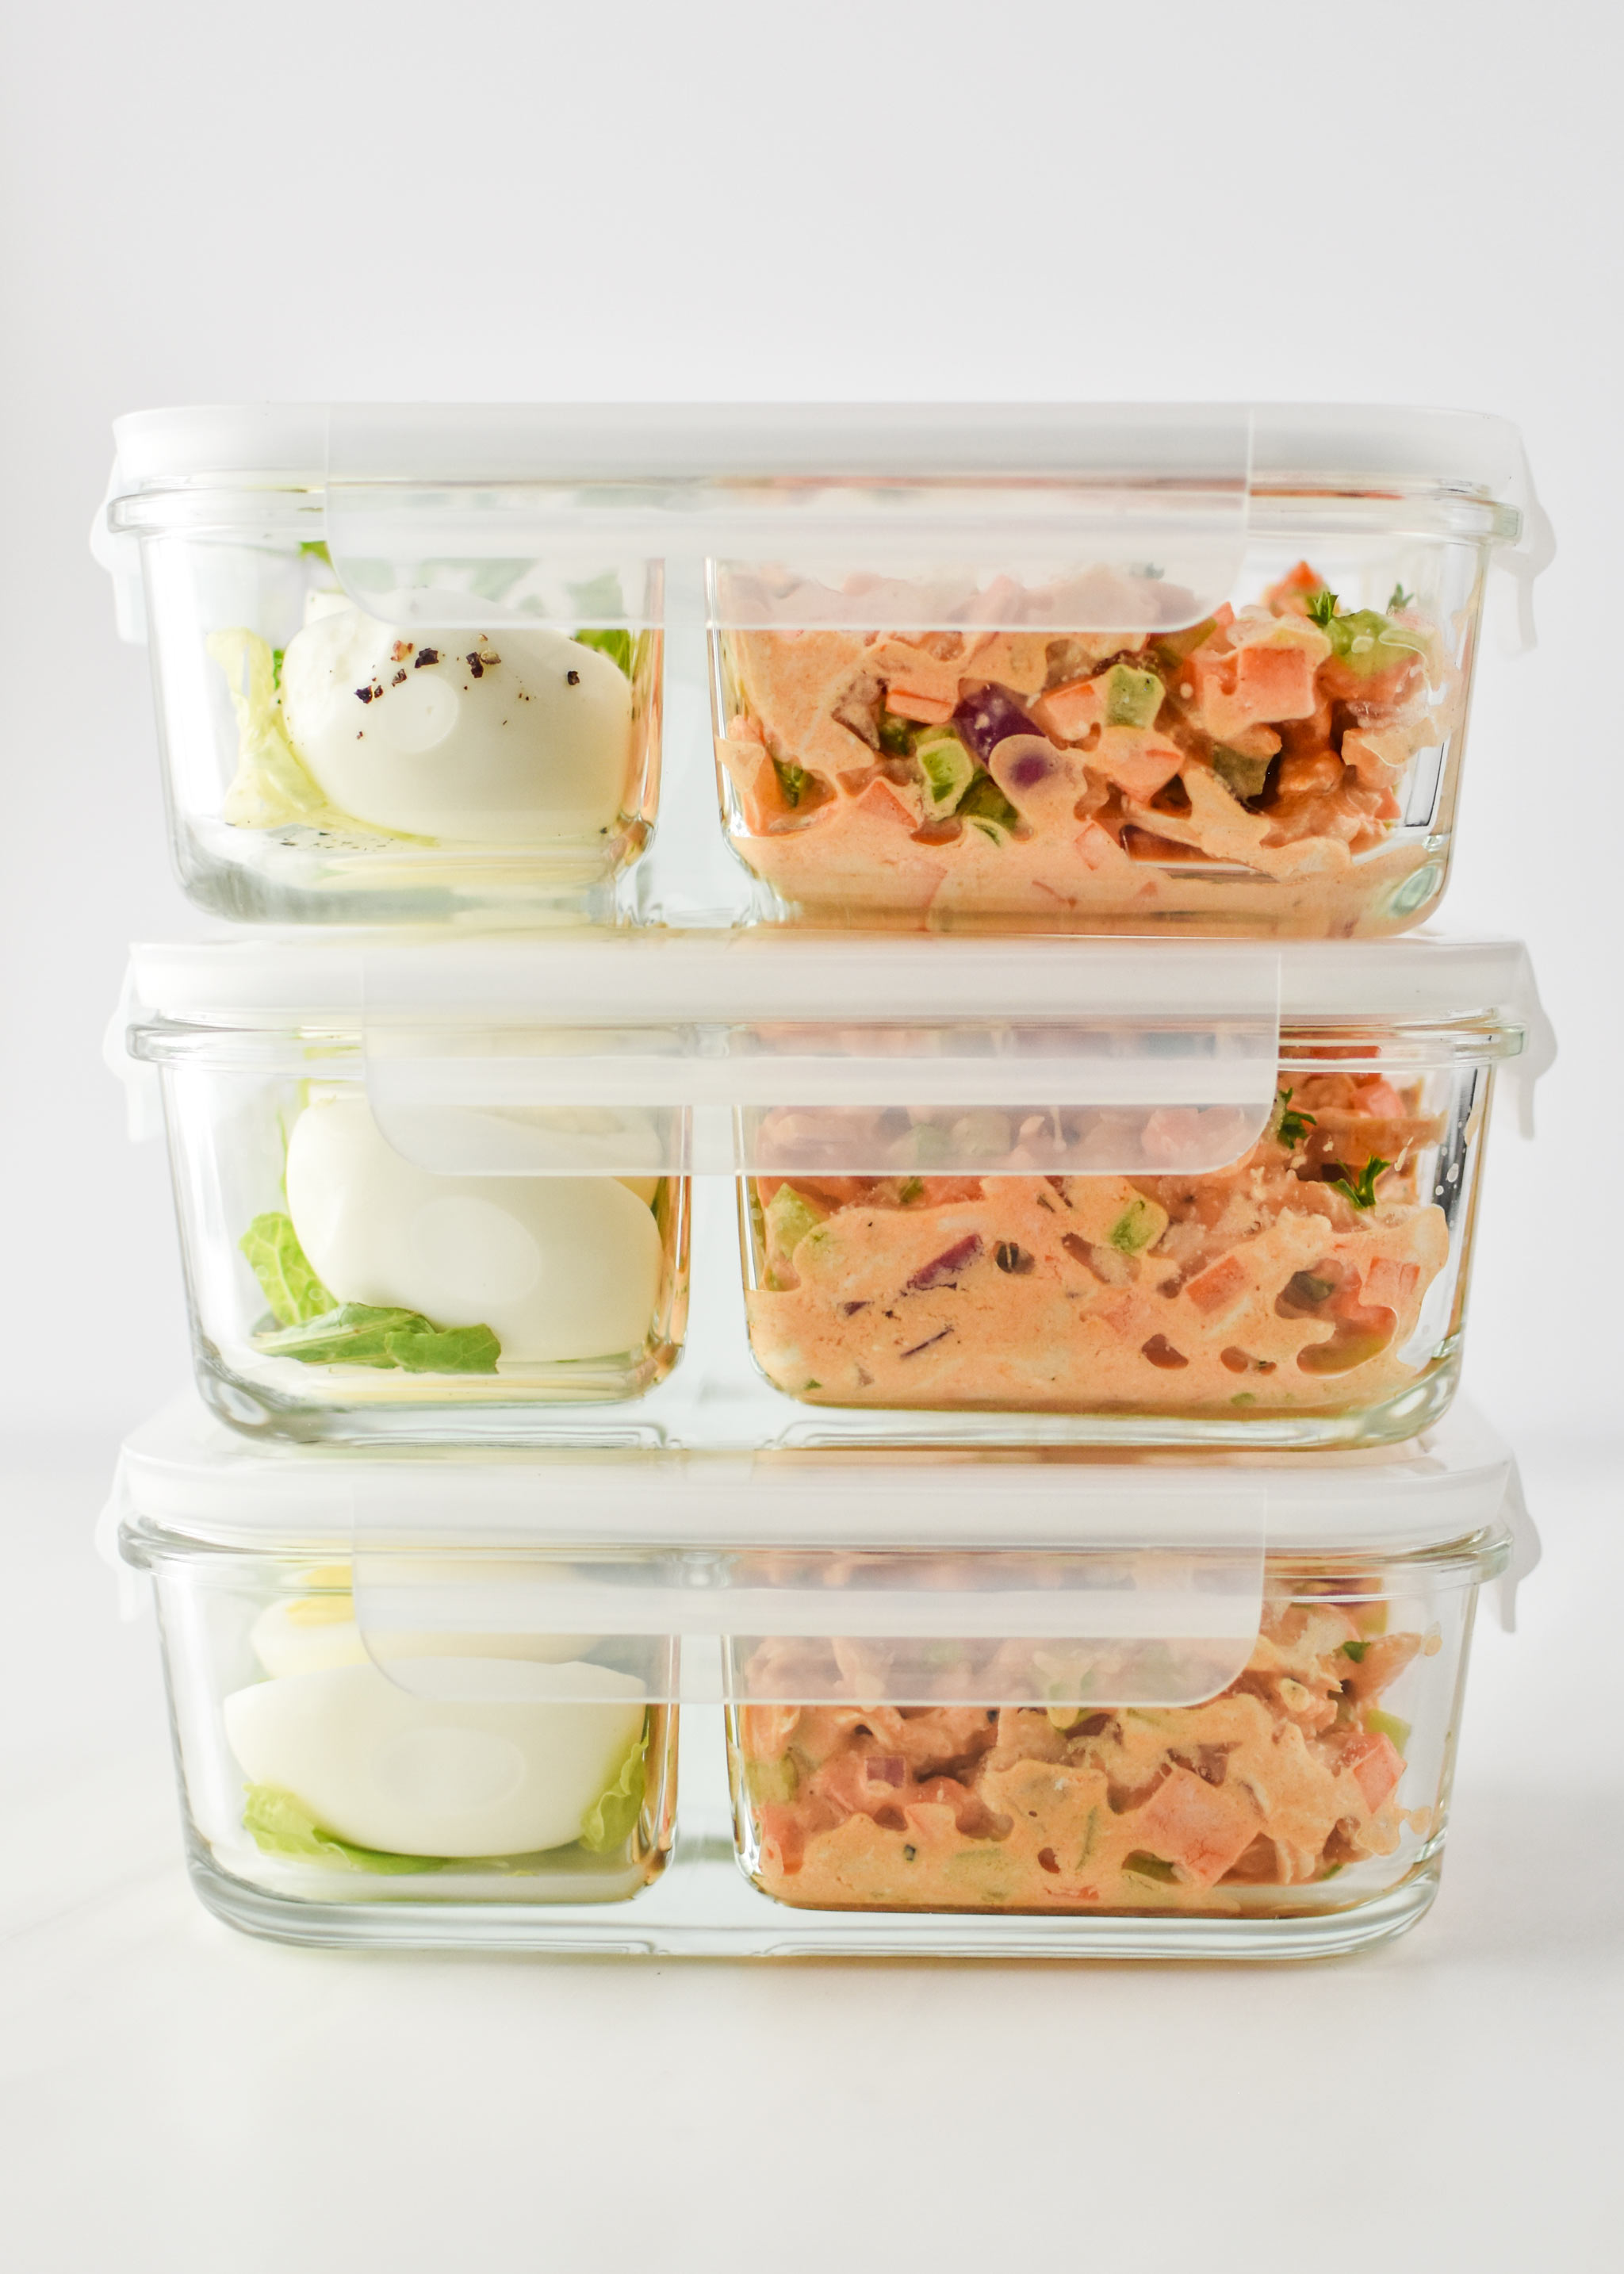 Easy buffalo chicken salad meal prepped into 3 containers